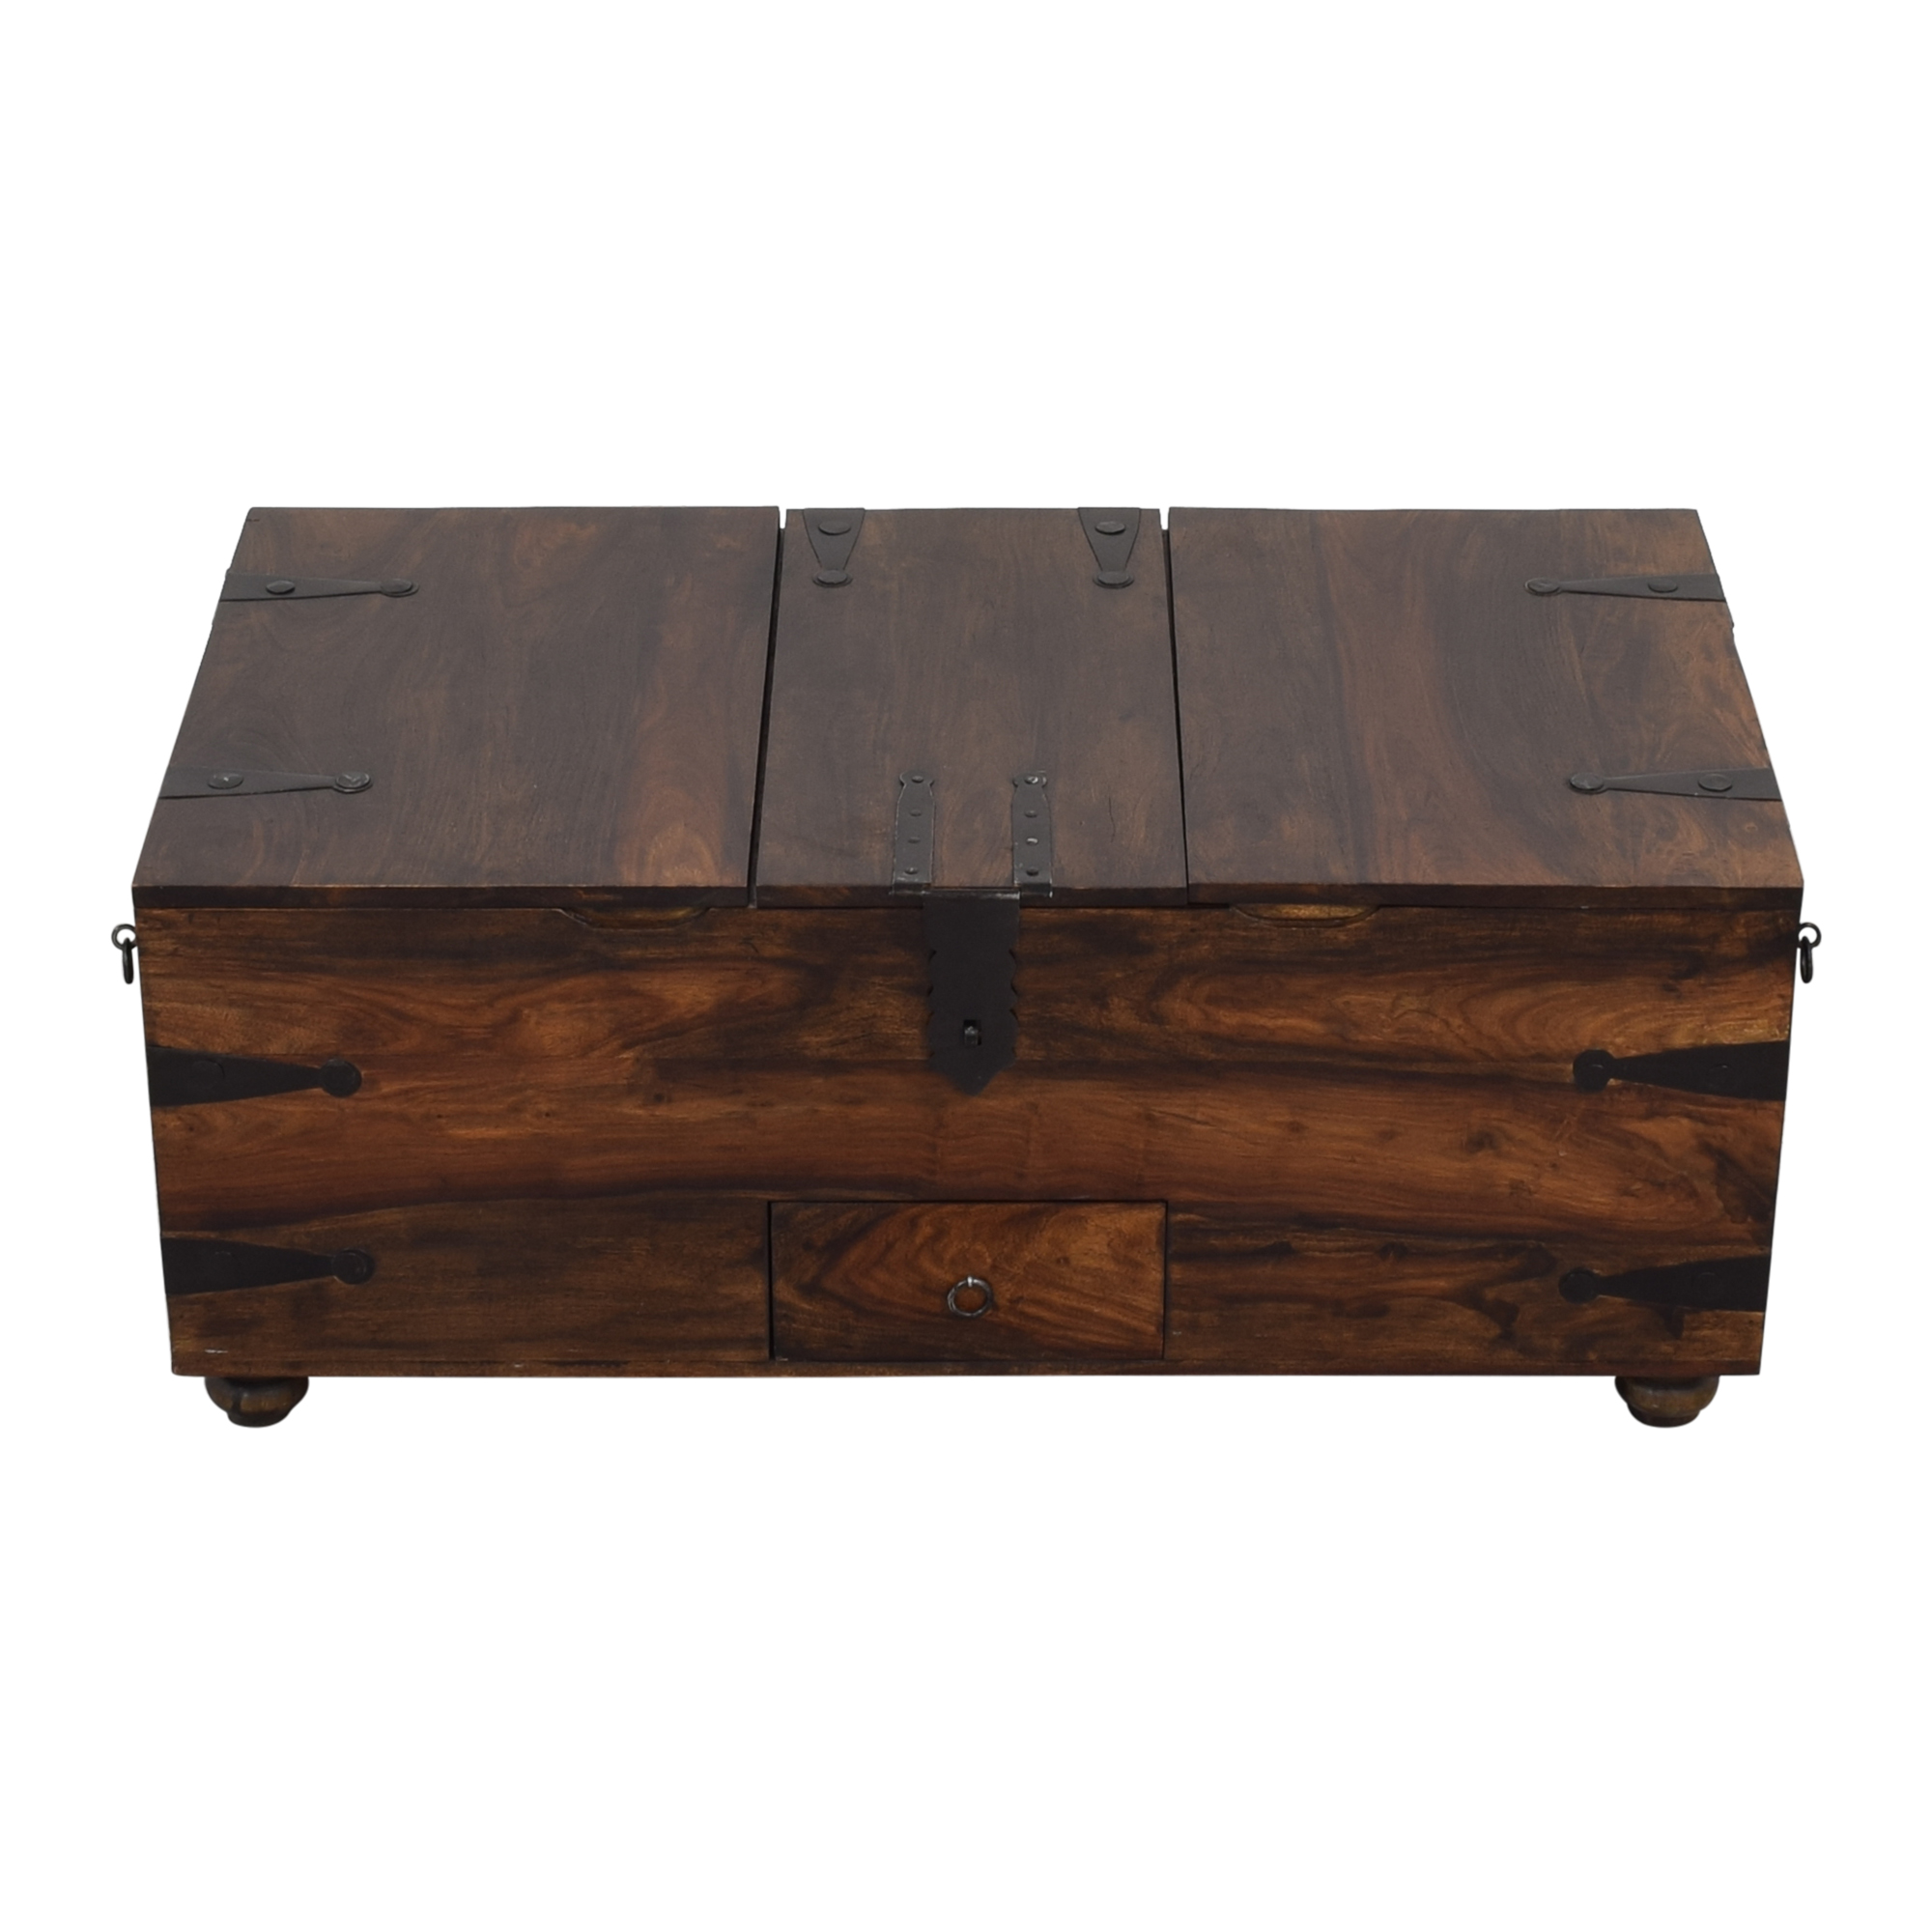 56 off crate barrel crate barrel taka trunk and coffee table storage